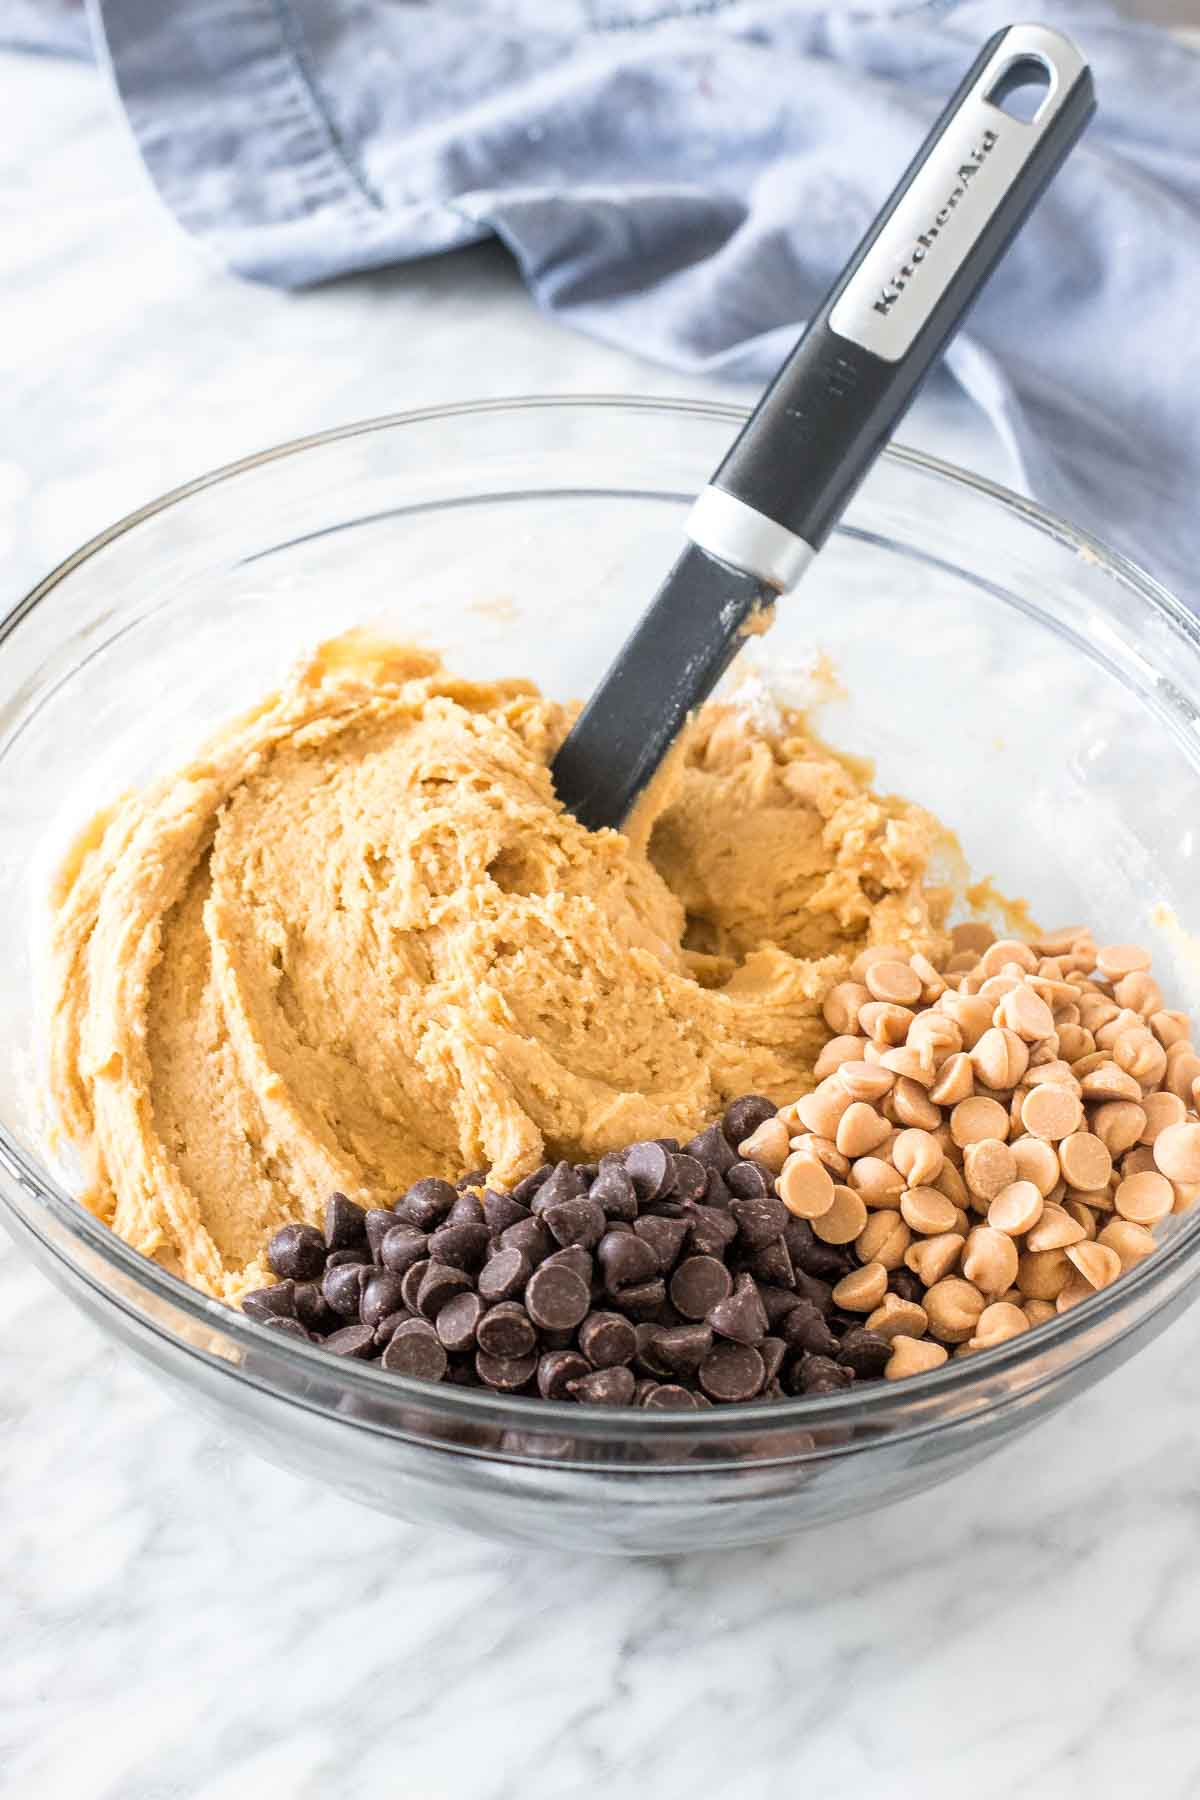 Bowl of cookie dough with chocolate chips and peanut butter chips.